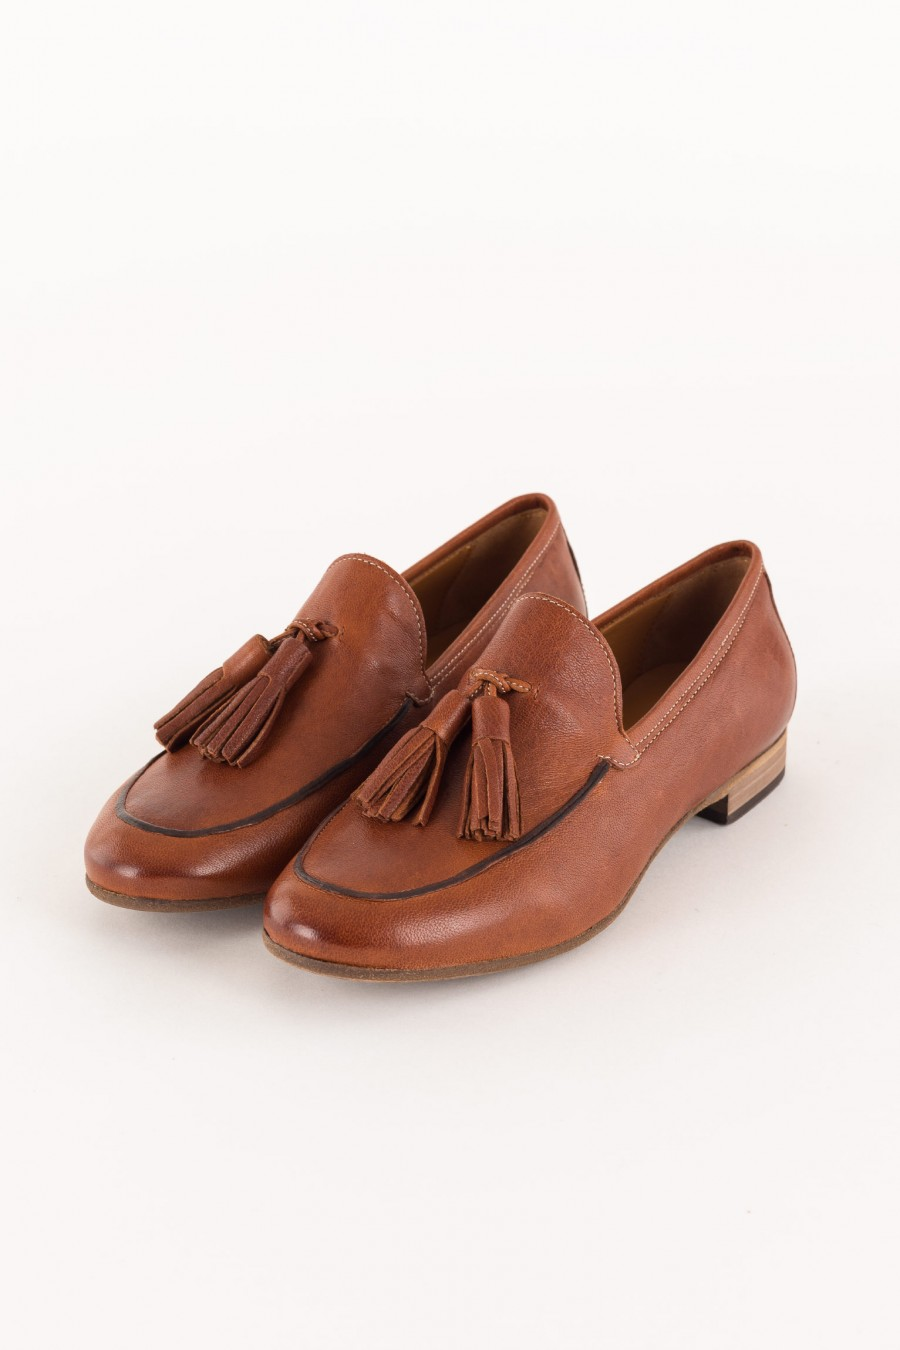 leather brick colored loafer